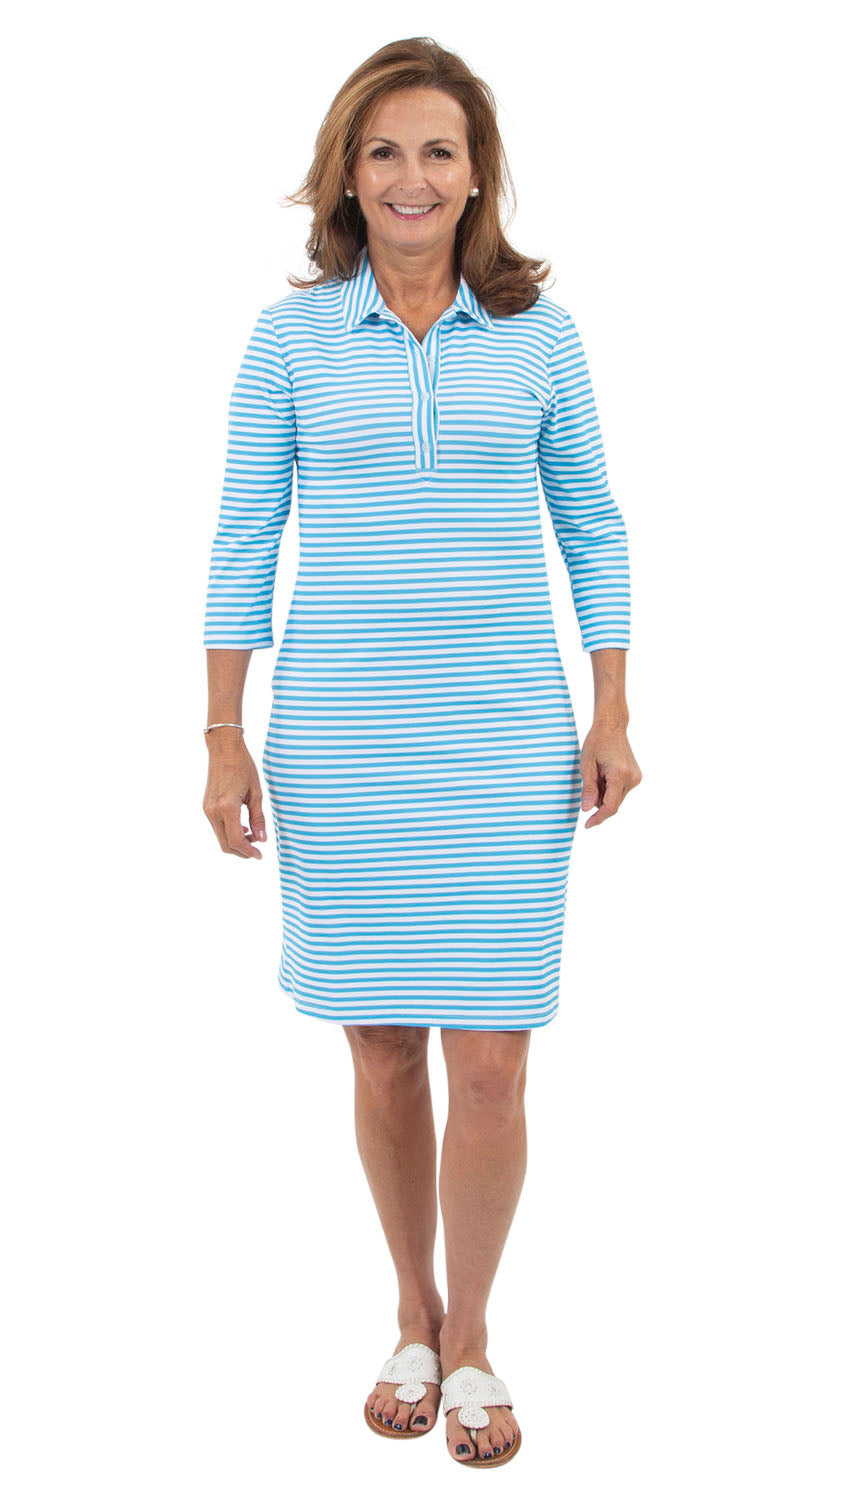 Port Dress - Aquarius/White Stripe - SAMPLE FINAL SALE